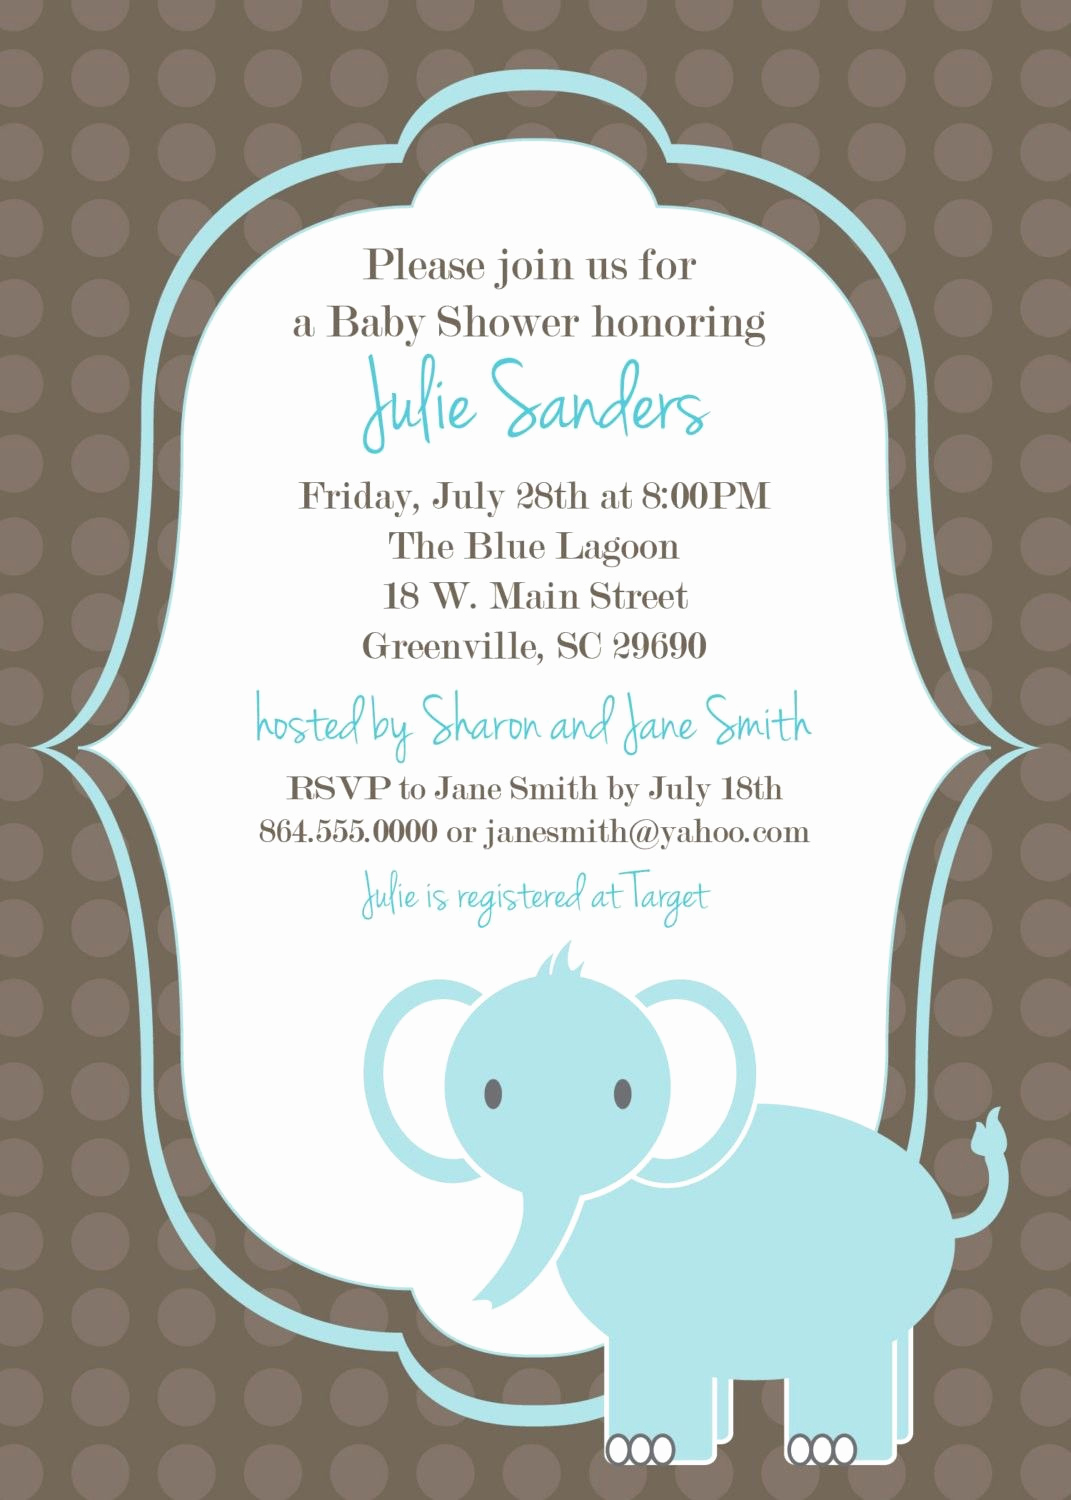 Free Invitation Template Printable Elegant Download Free Template Got the Free Baby Shower